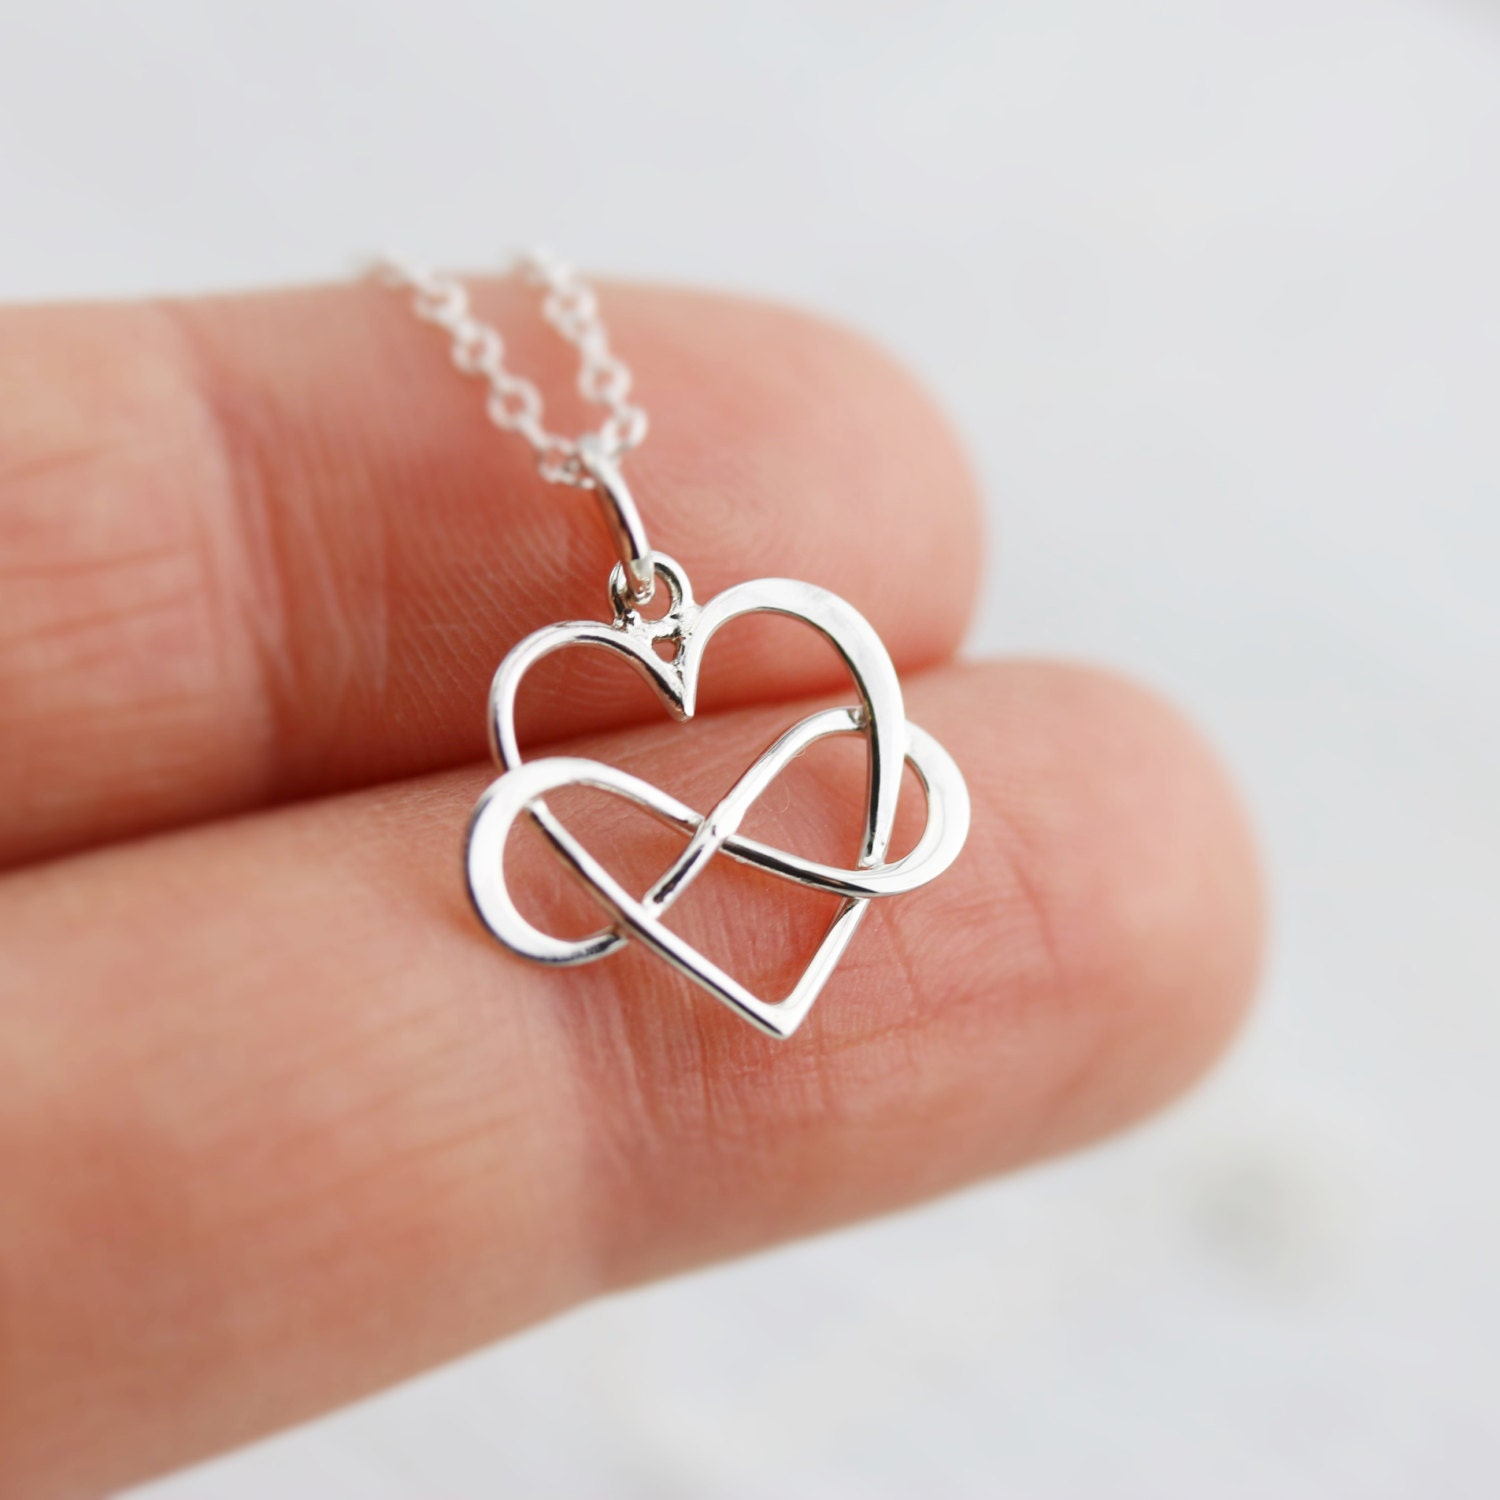 infinity heart necklace sterling silver inifinity heart. Black Bedroom Furniture Sets. Home Design Ideas